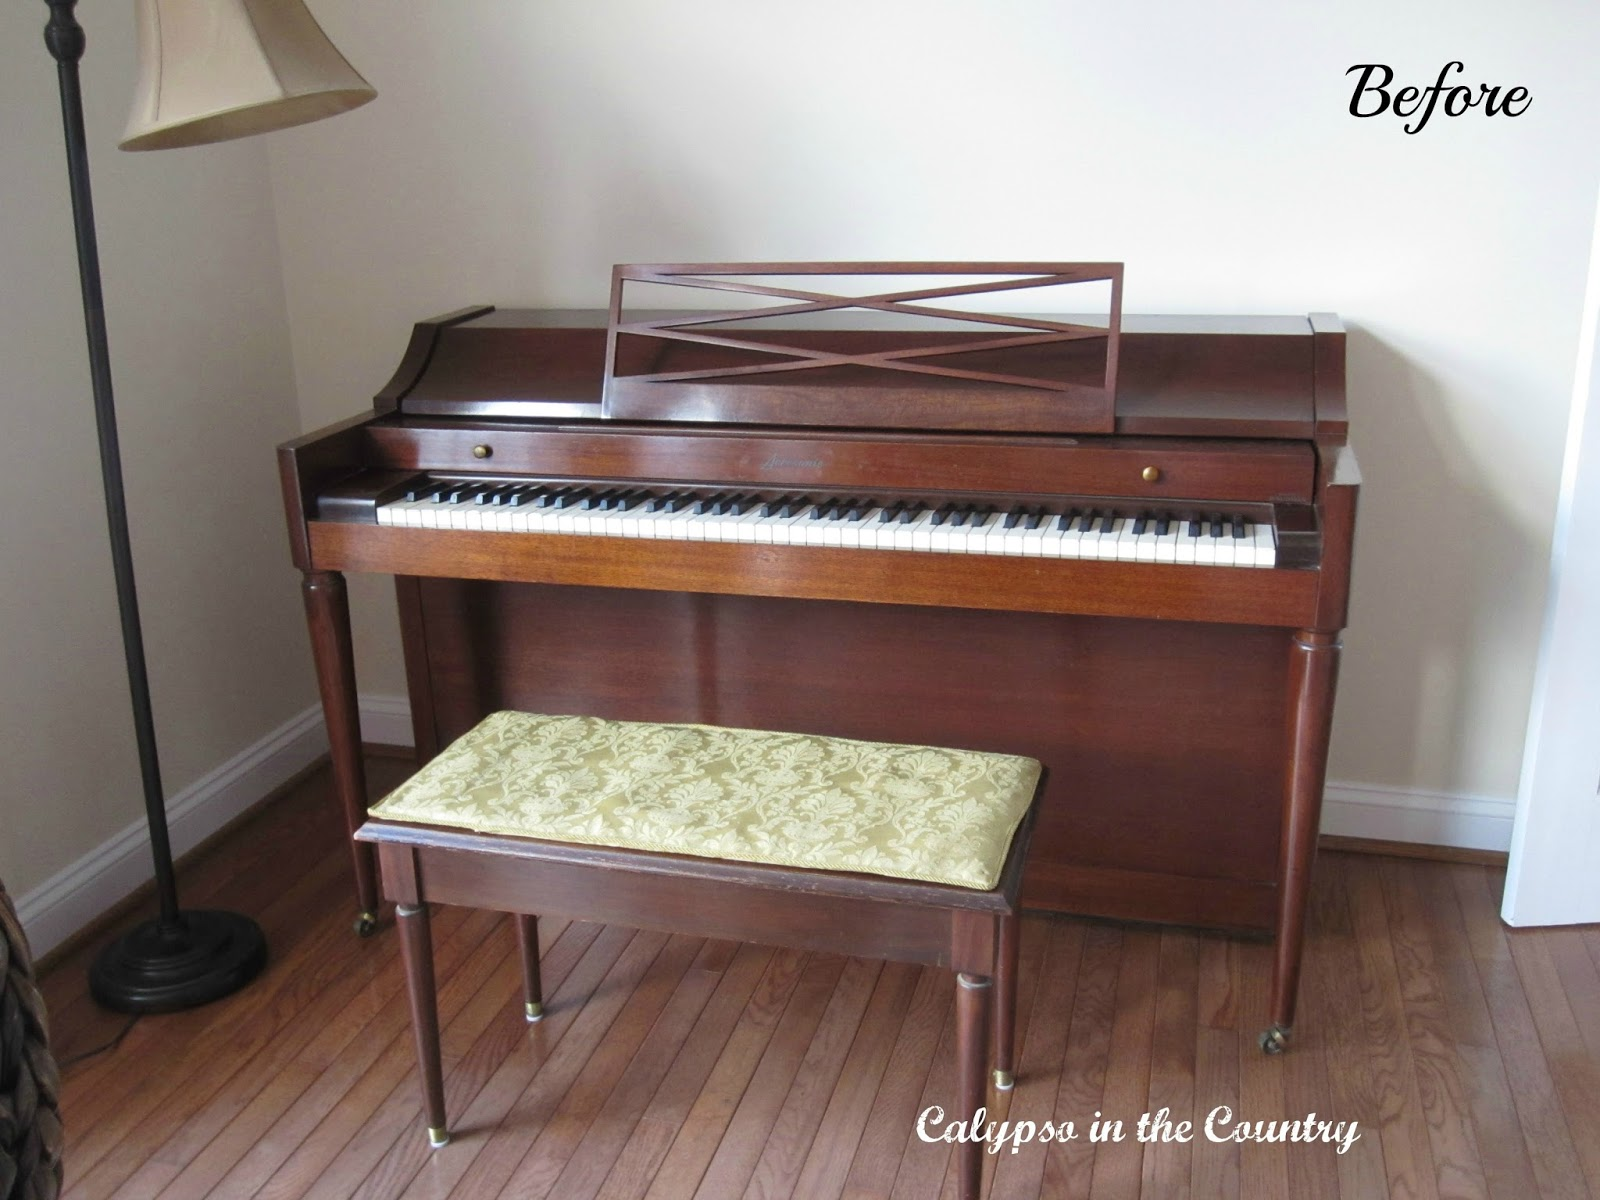 Piano decorating calypso in the country - Piano for small space decoration ...